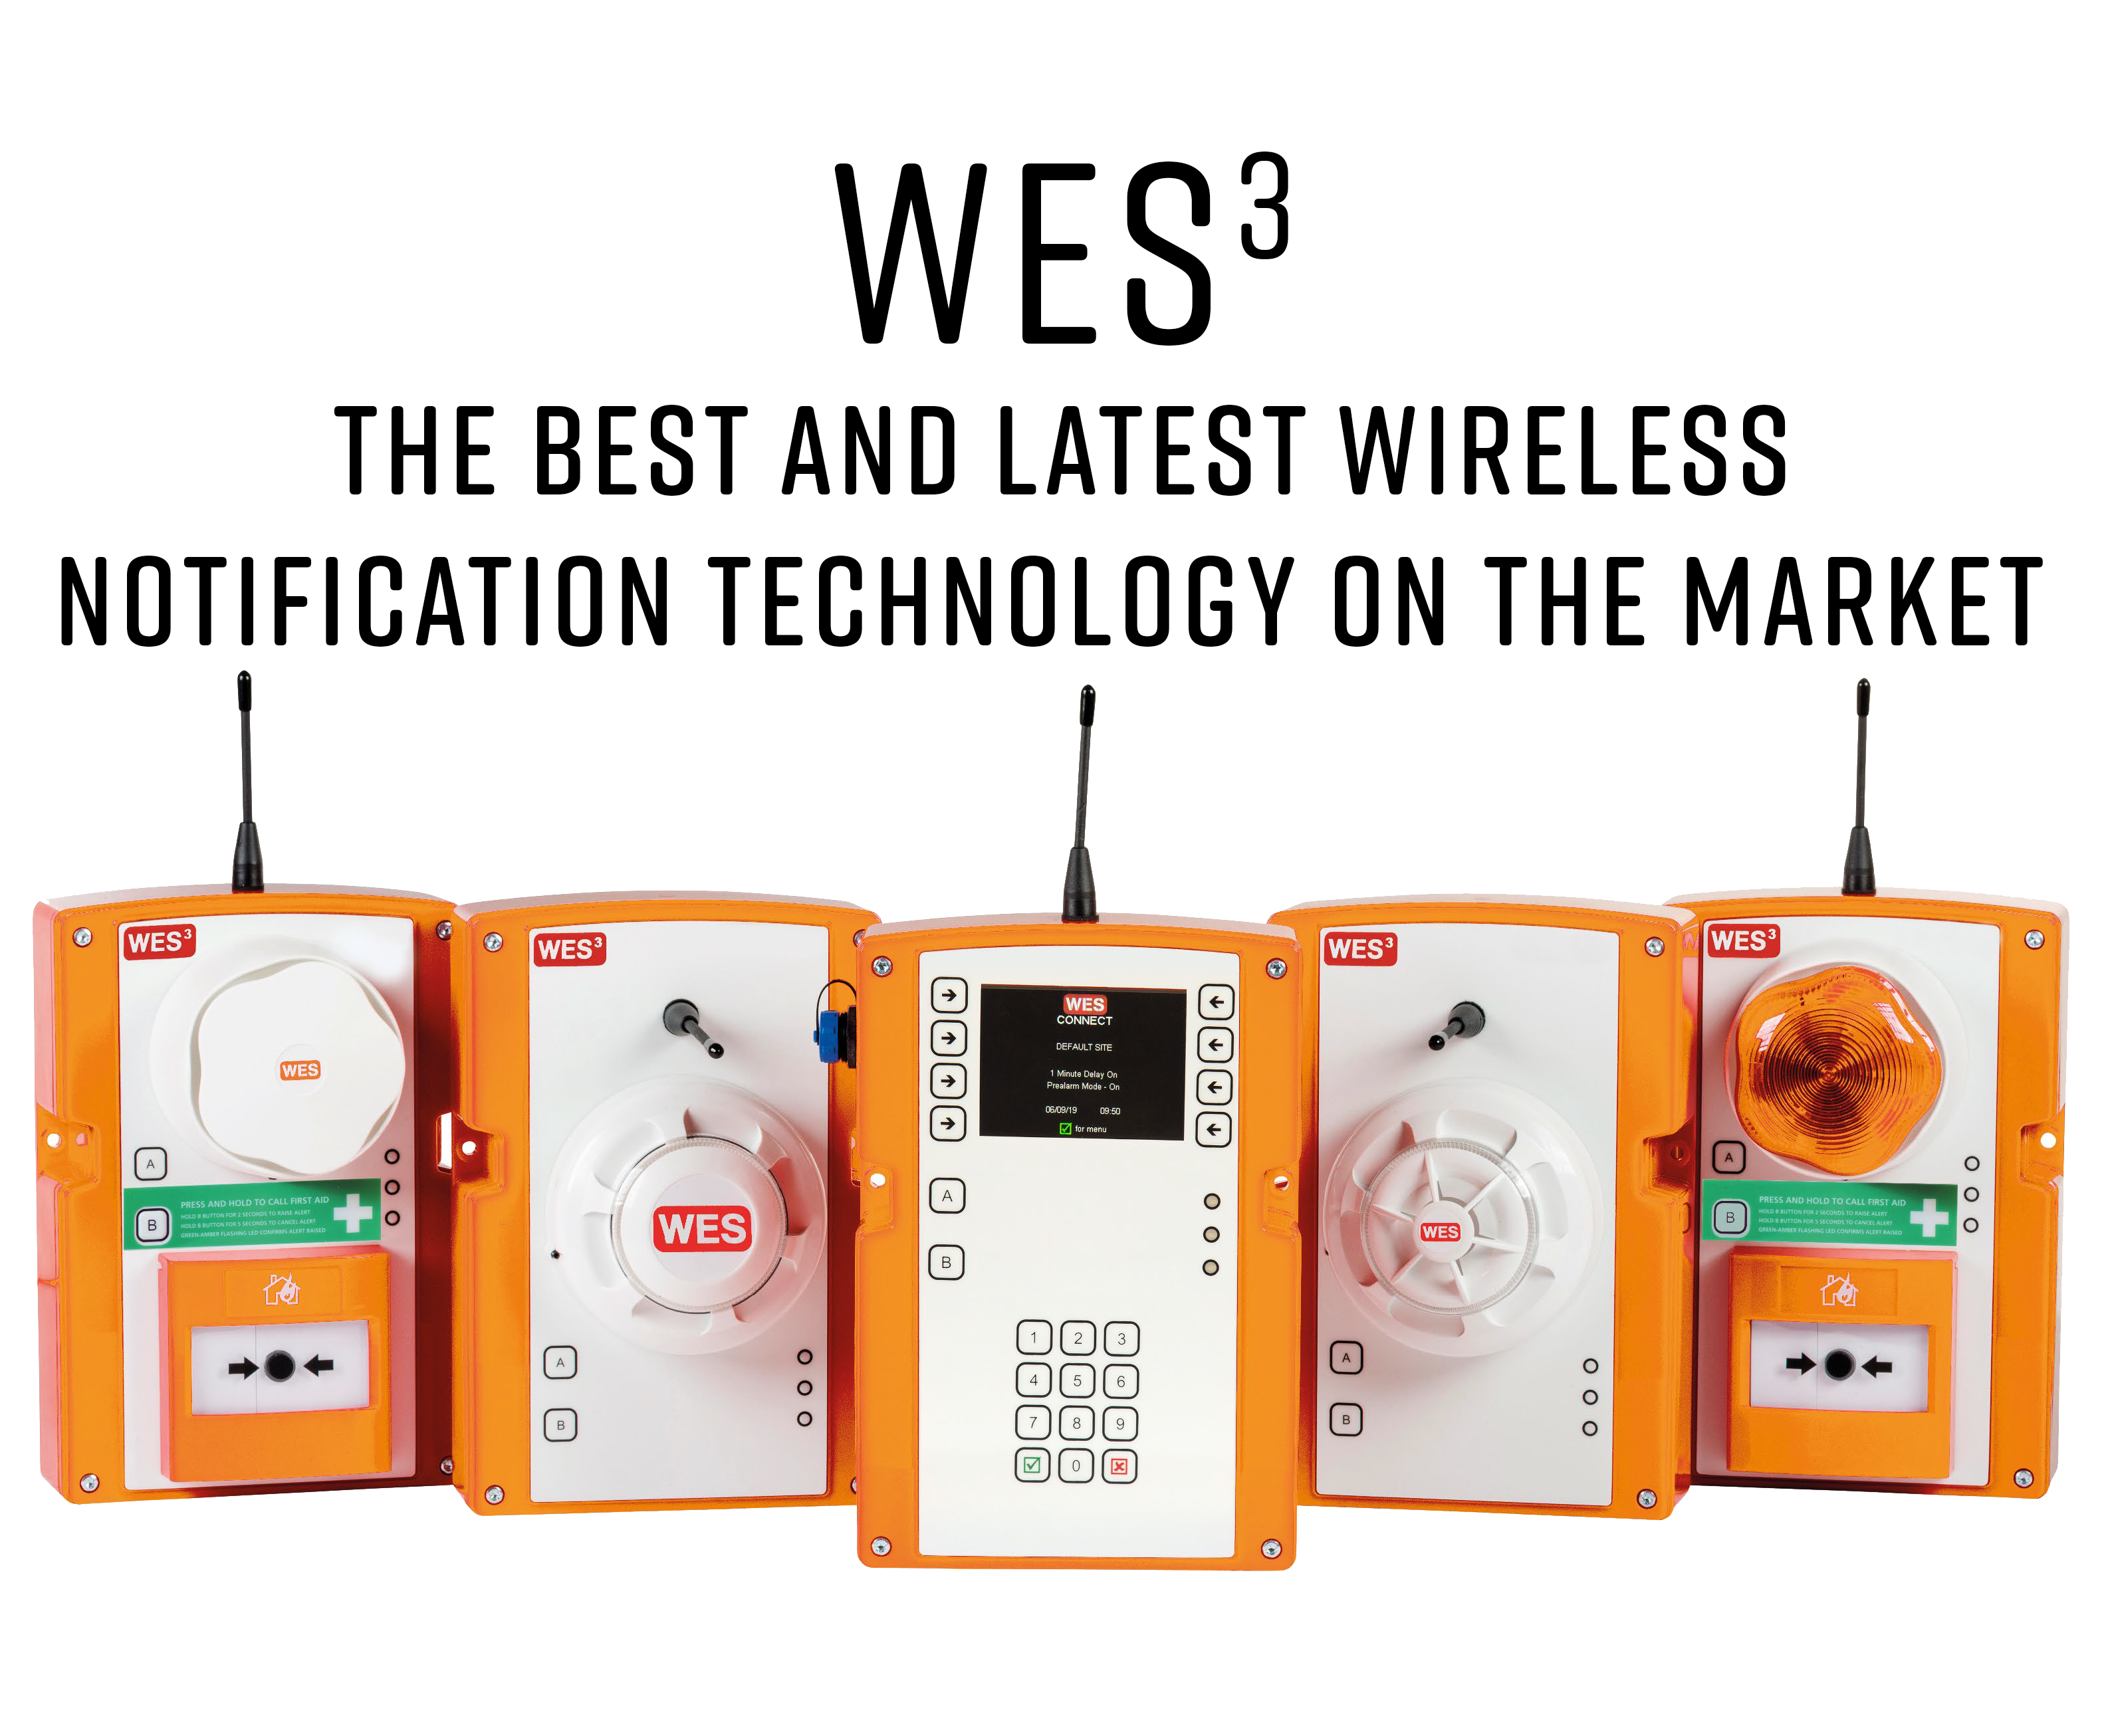 WES 3 The Best And Latest Wireless Notification Technology On The Market.